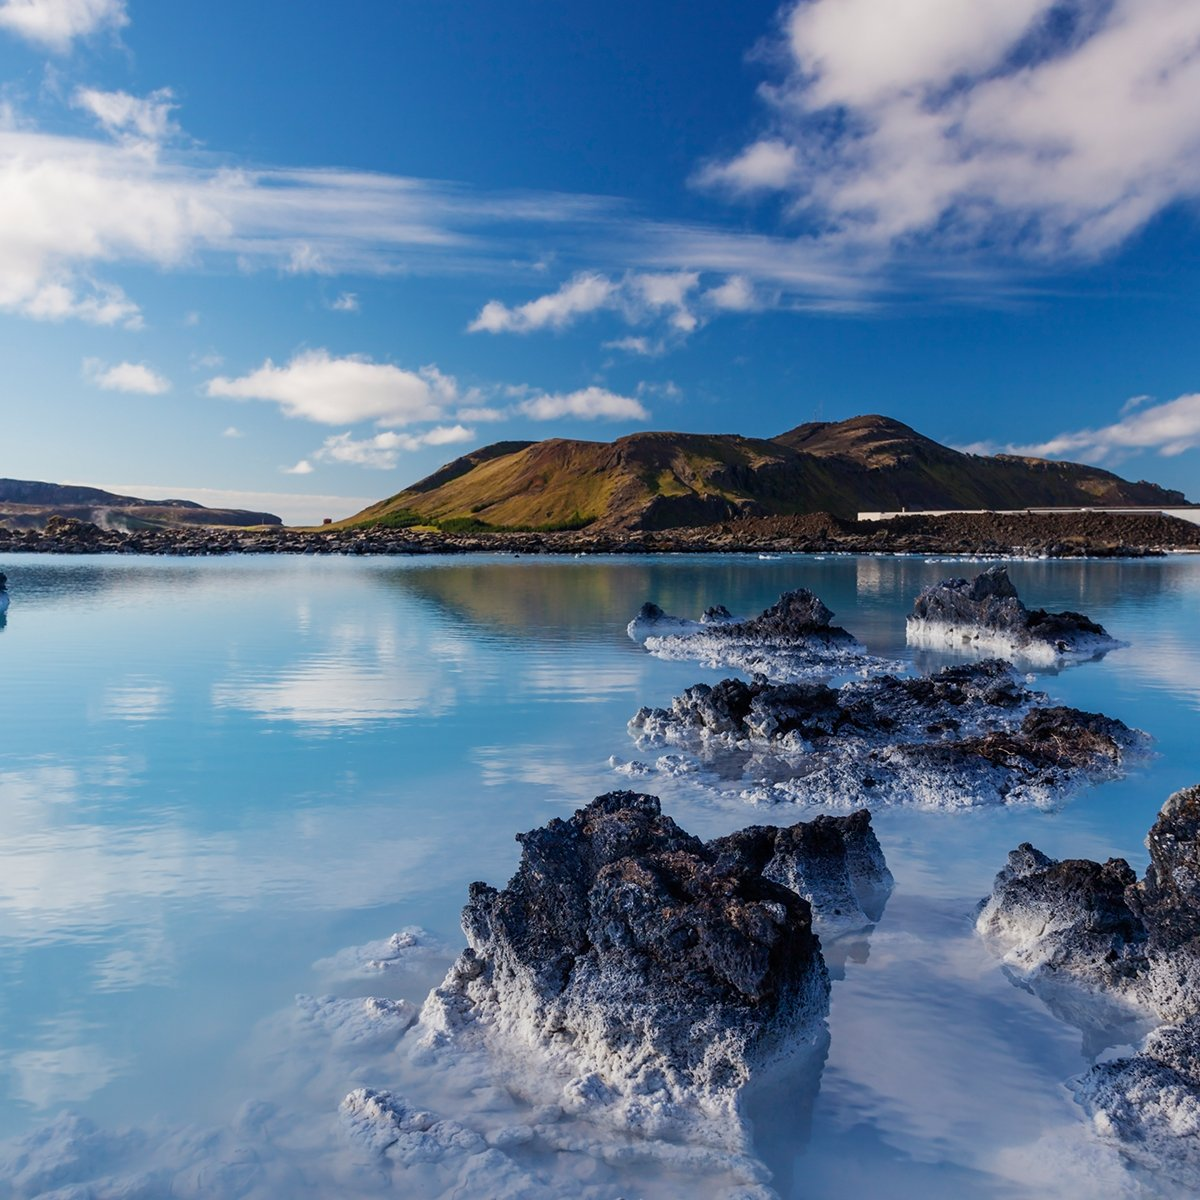 Aberdeen to Iceland return from £128 with Icelandair. View all destinations & fares: